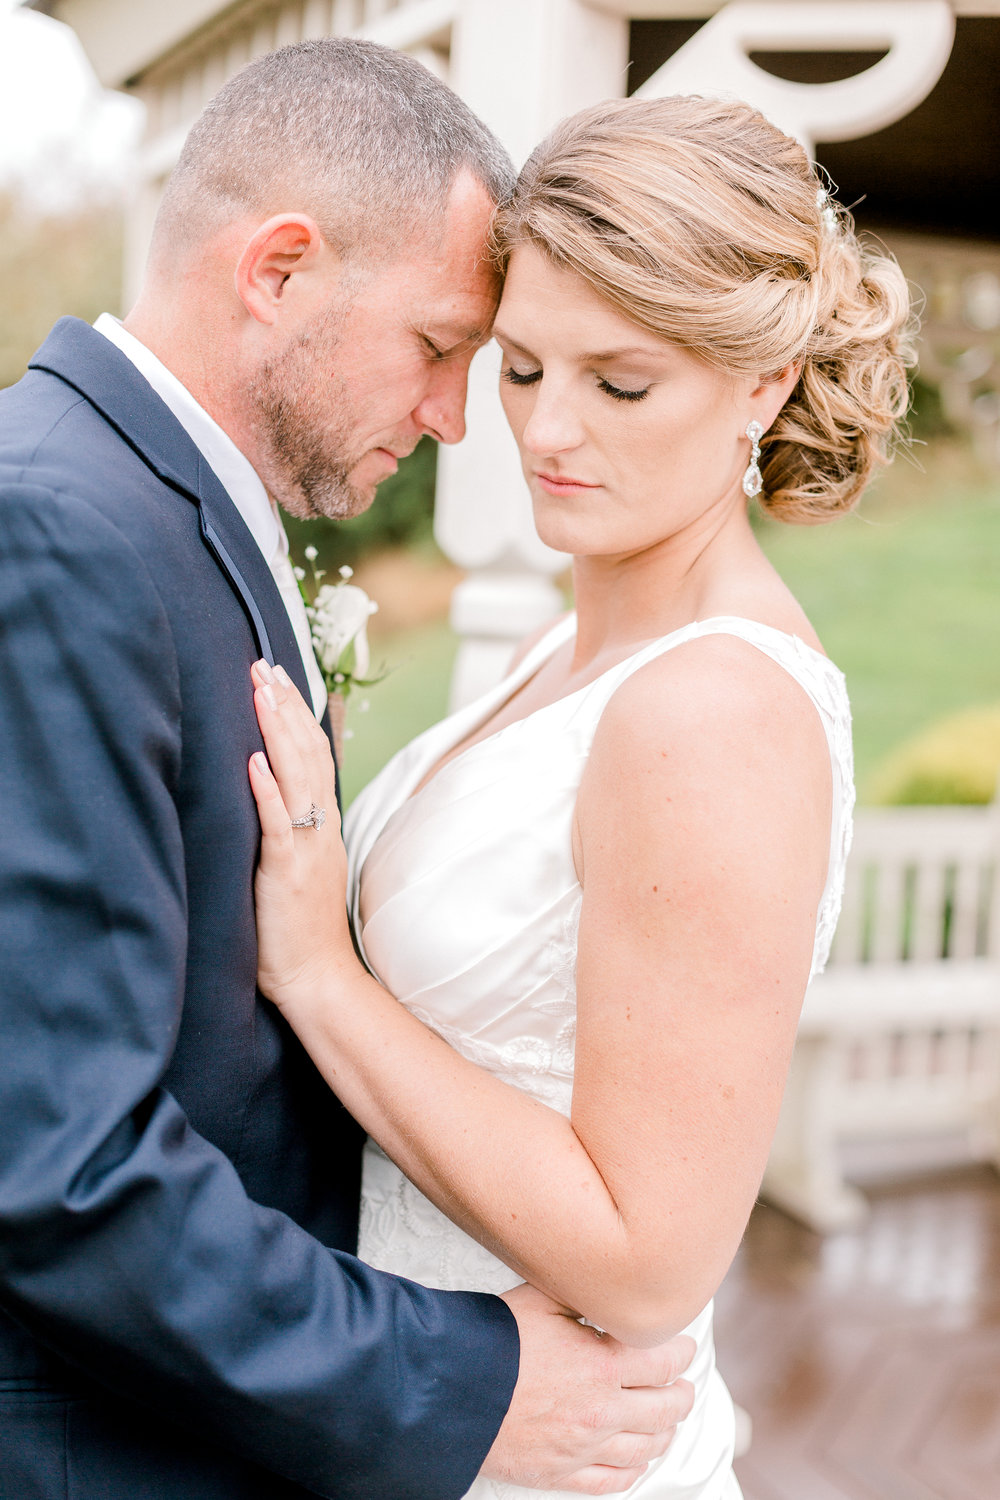 Pennsylvania October Fall Lehigh Valley wedding and lifestyle photographer Lytle Photo Co (48 of 167).jpg